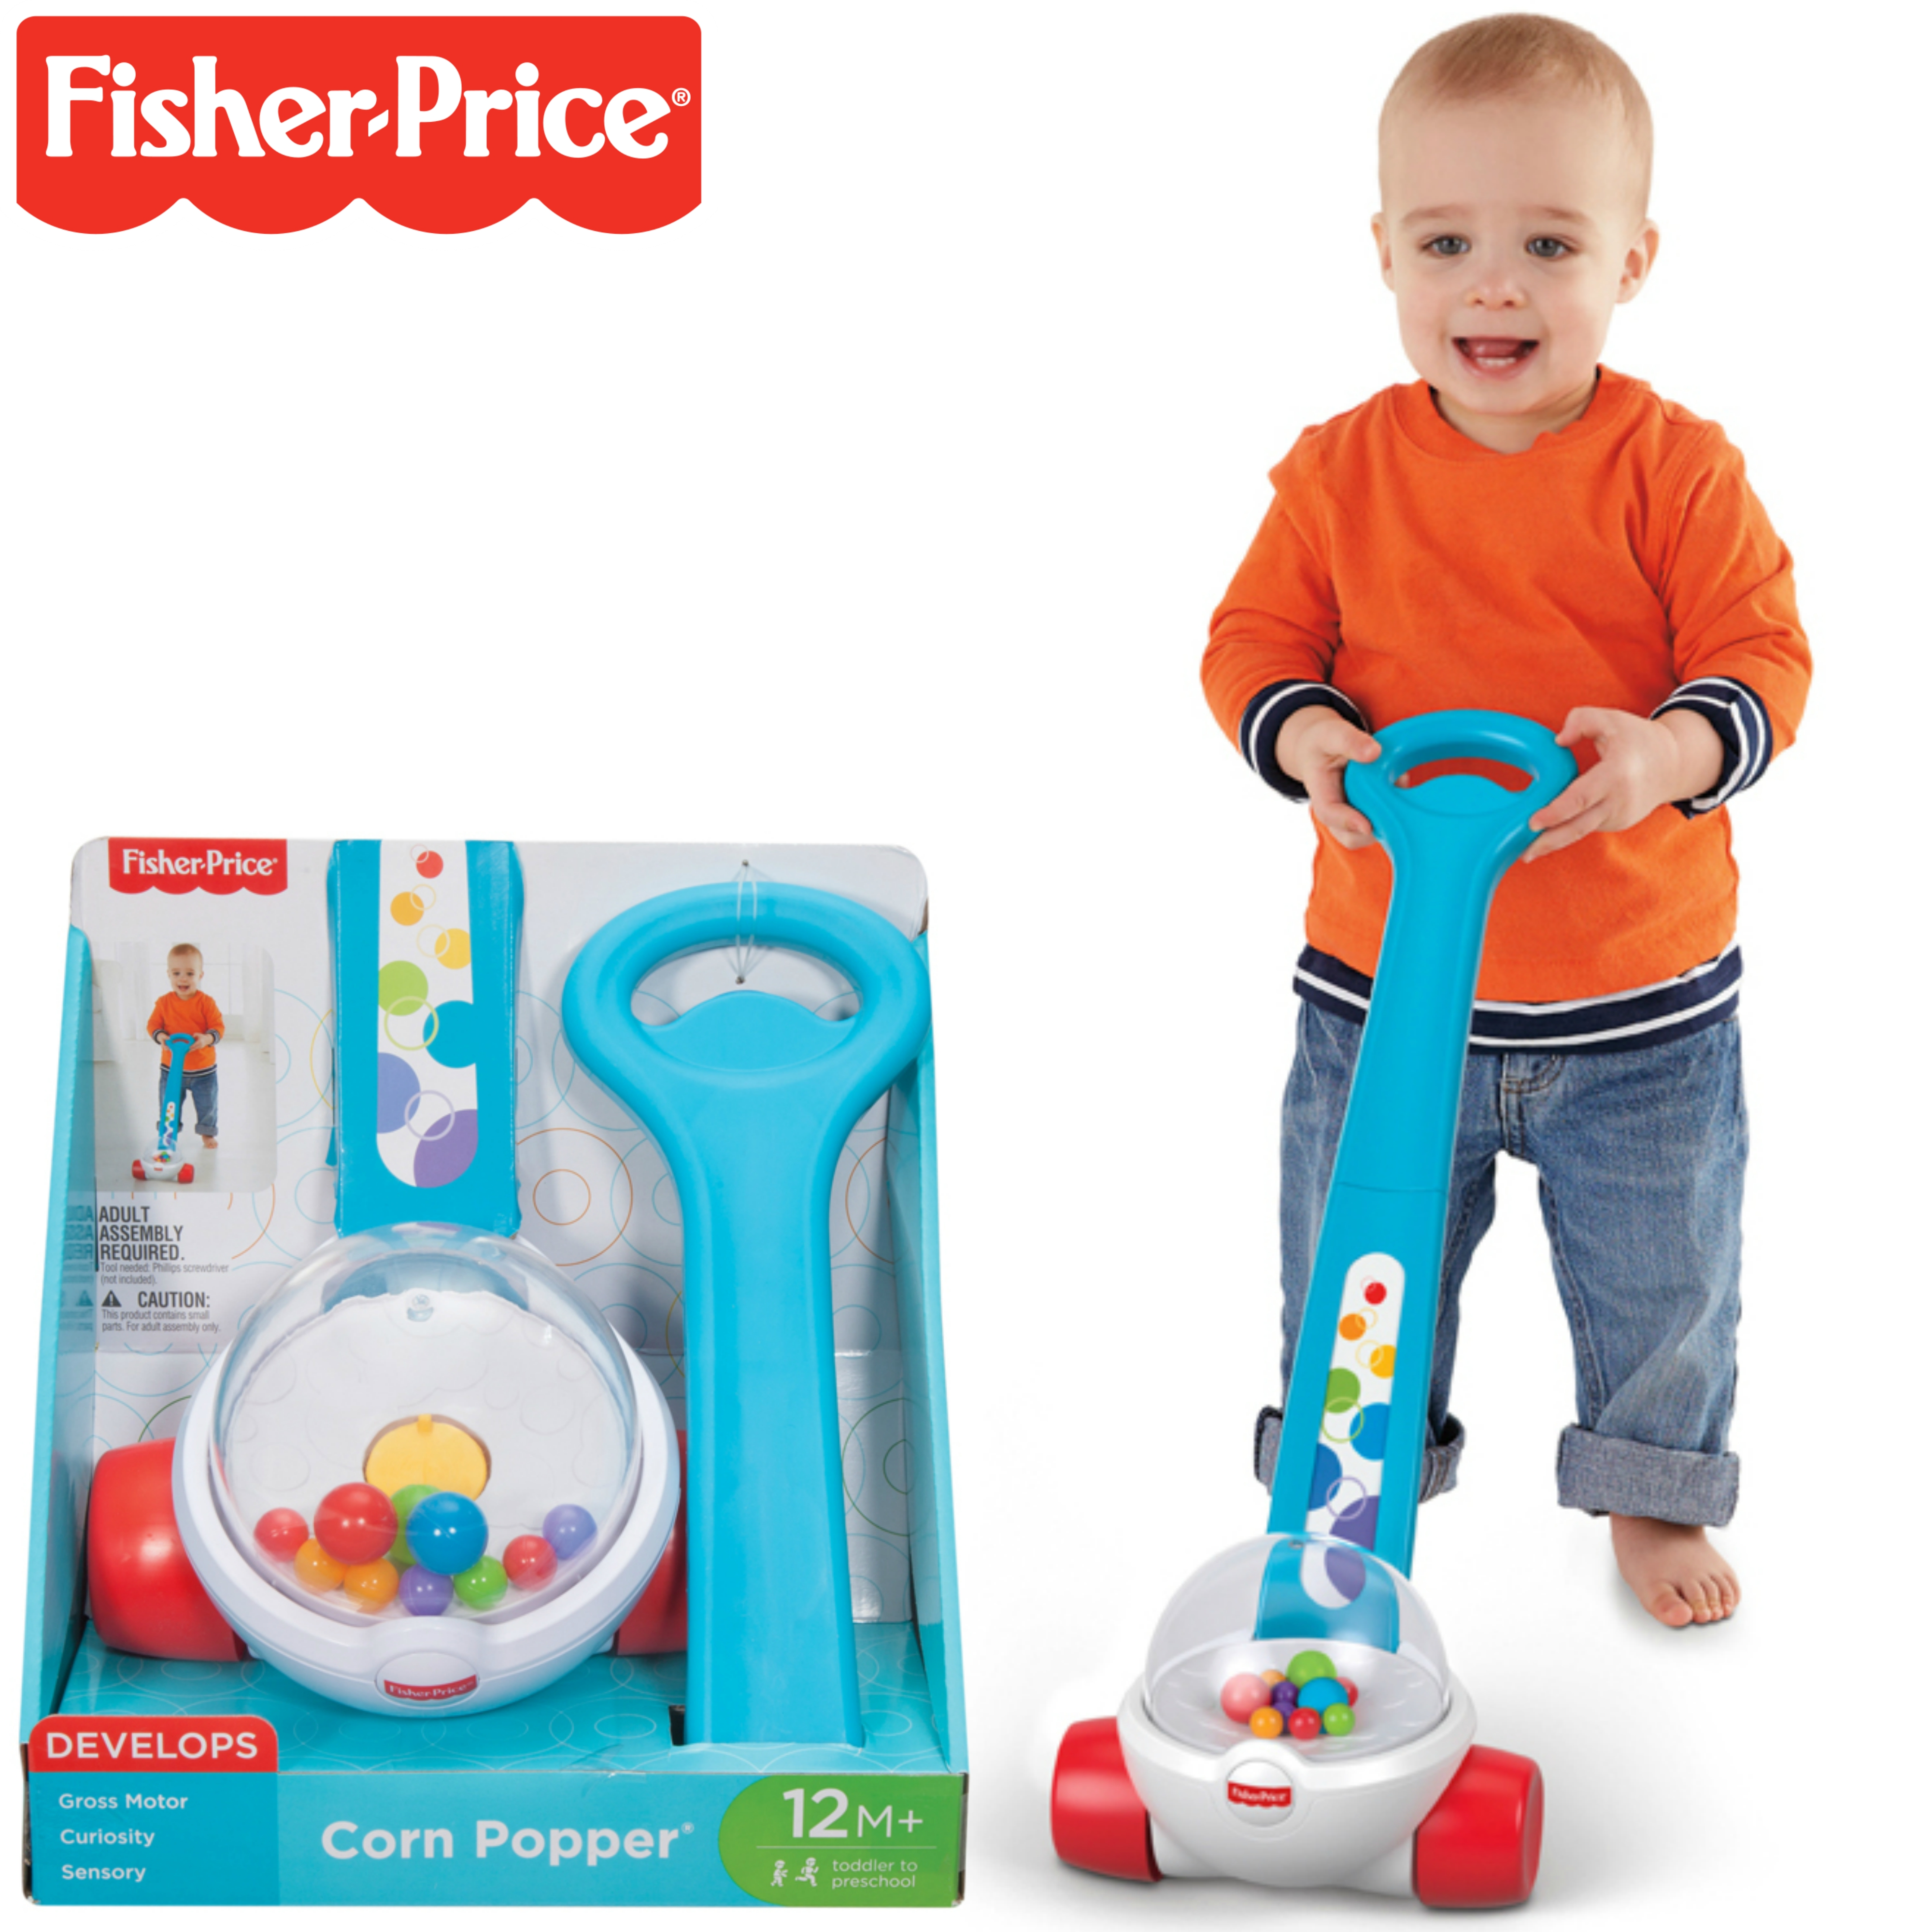 Toddler Push Along Toy with Ball-popping Sounds... Fisher-Price Corn Popper